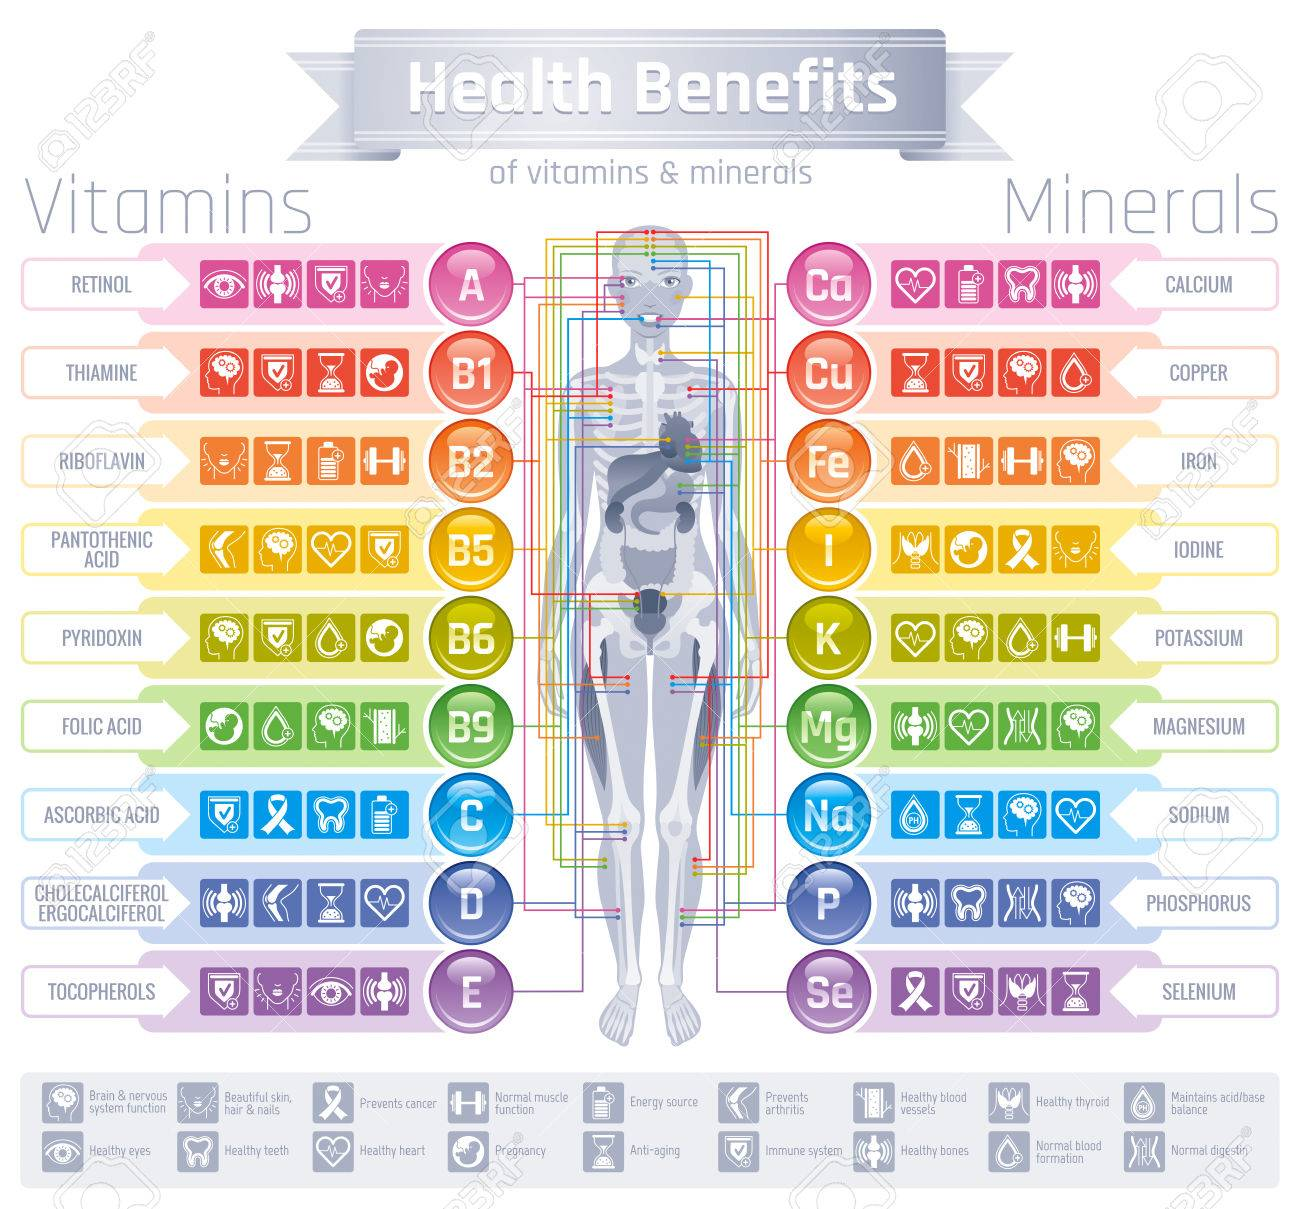 Mineral Vitamin Supplement Icons Health Benefit Flat Vector Royalty Free Cliparts Vectors And Stock Illustration Image 80330485